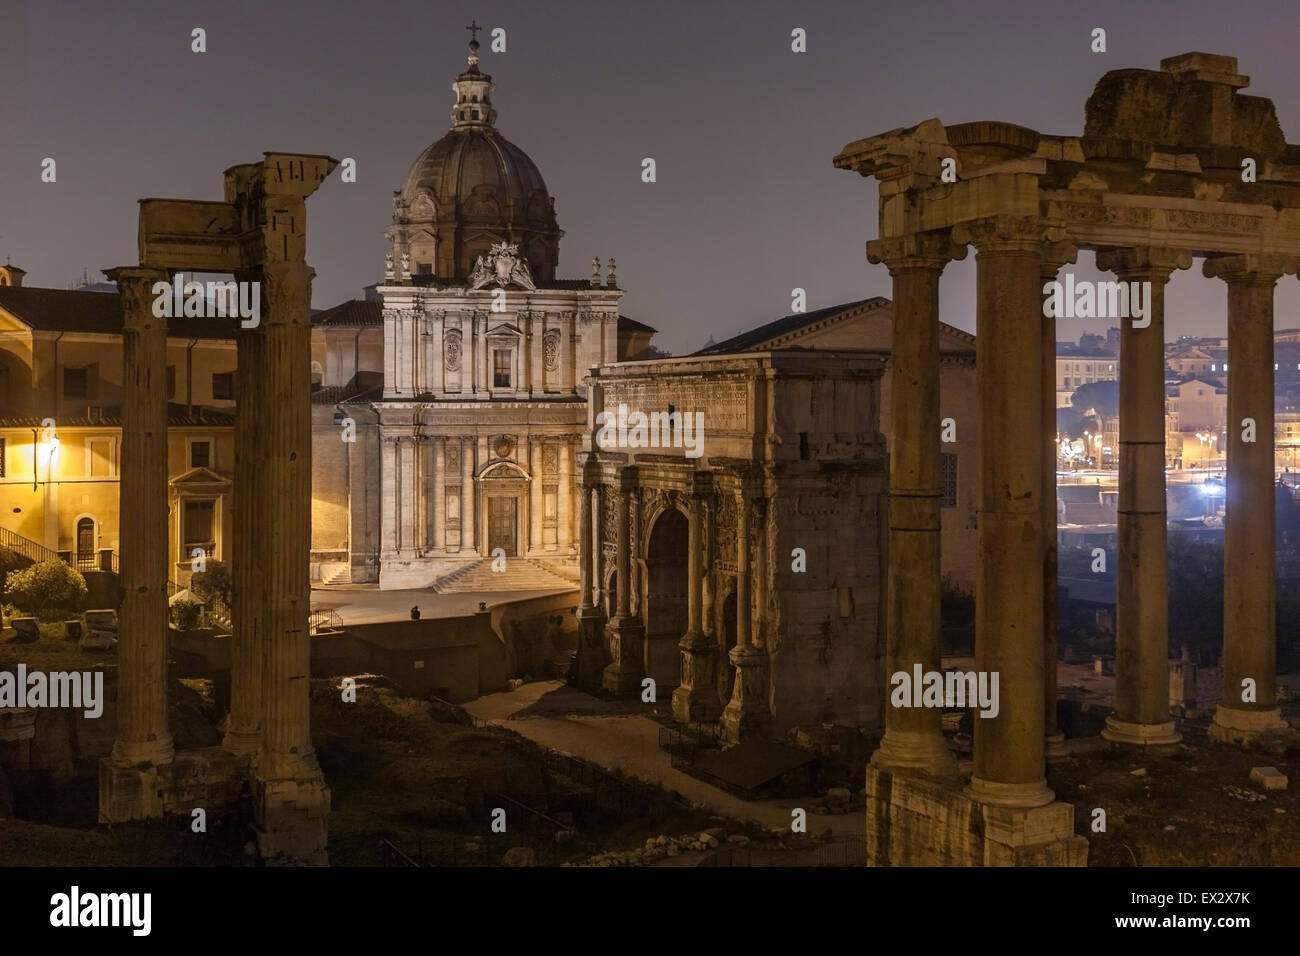 Foro Romano and Ruins of Septimius Severus Arch and Saturn Temple in Rome at night - Stock Image